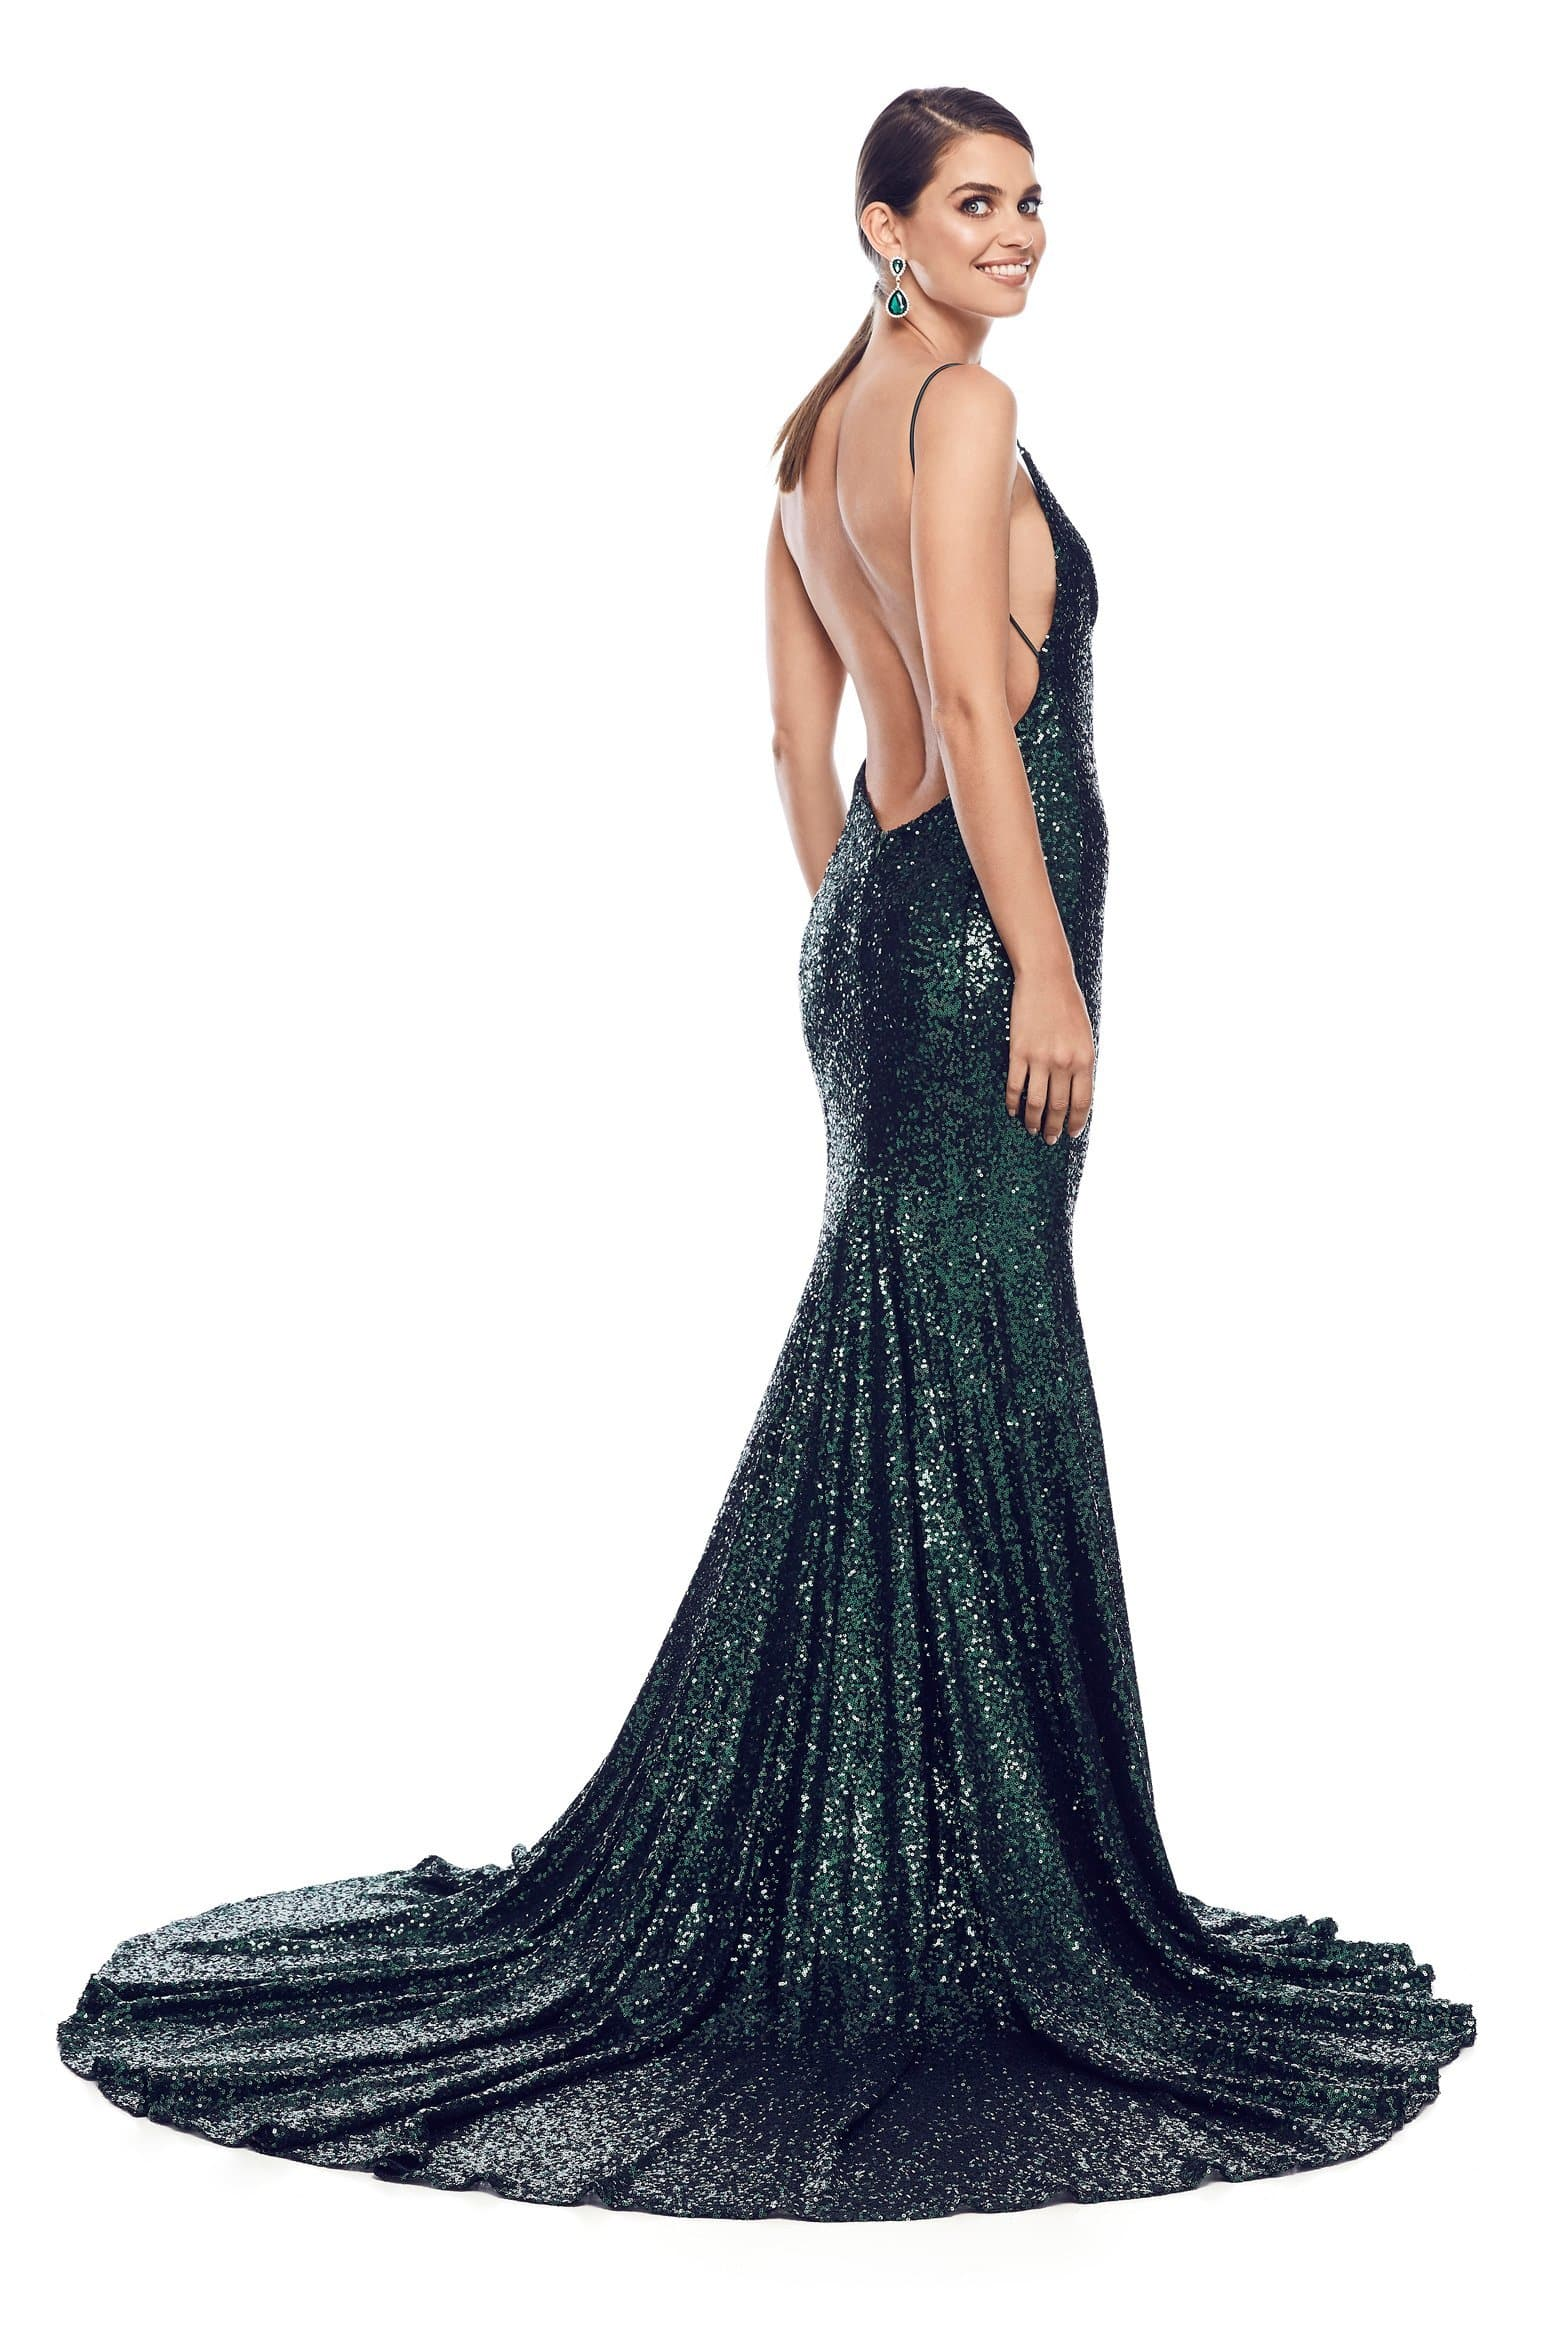 Armanah - Emerald Sequins Gown with Side Slit & Mermaid Tail